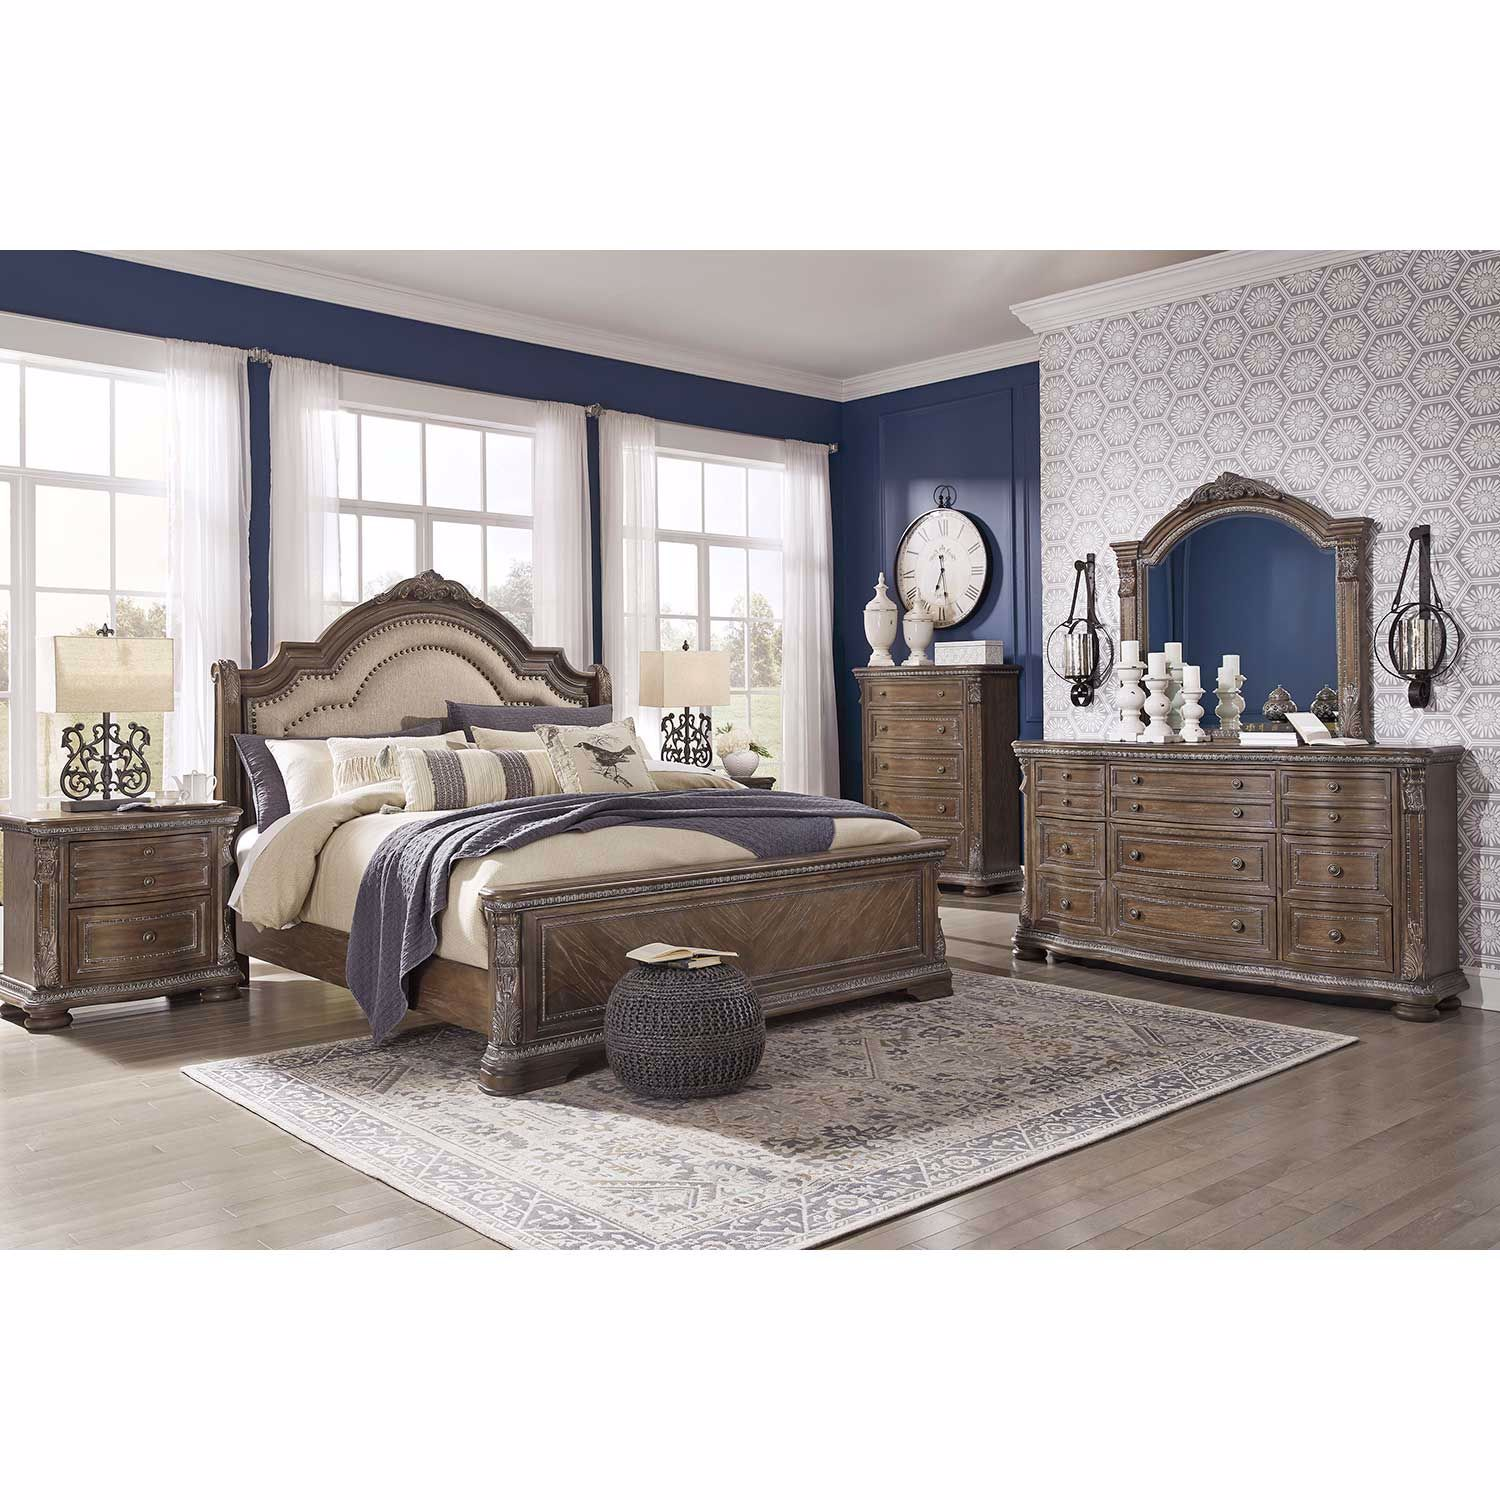 Picture of Charmond 5 Piece Bedroom Set